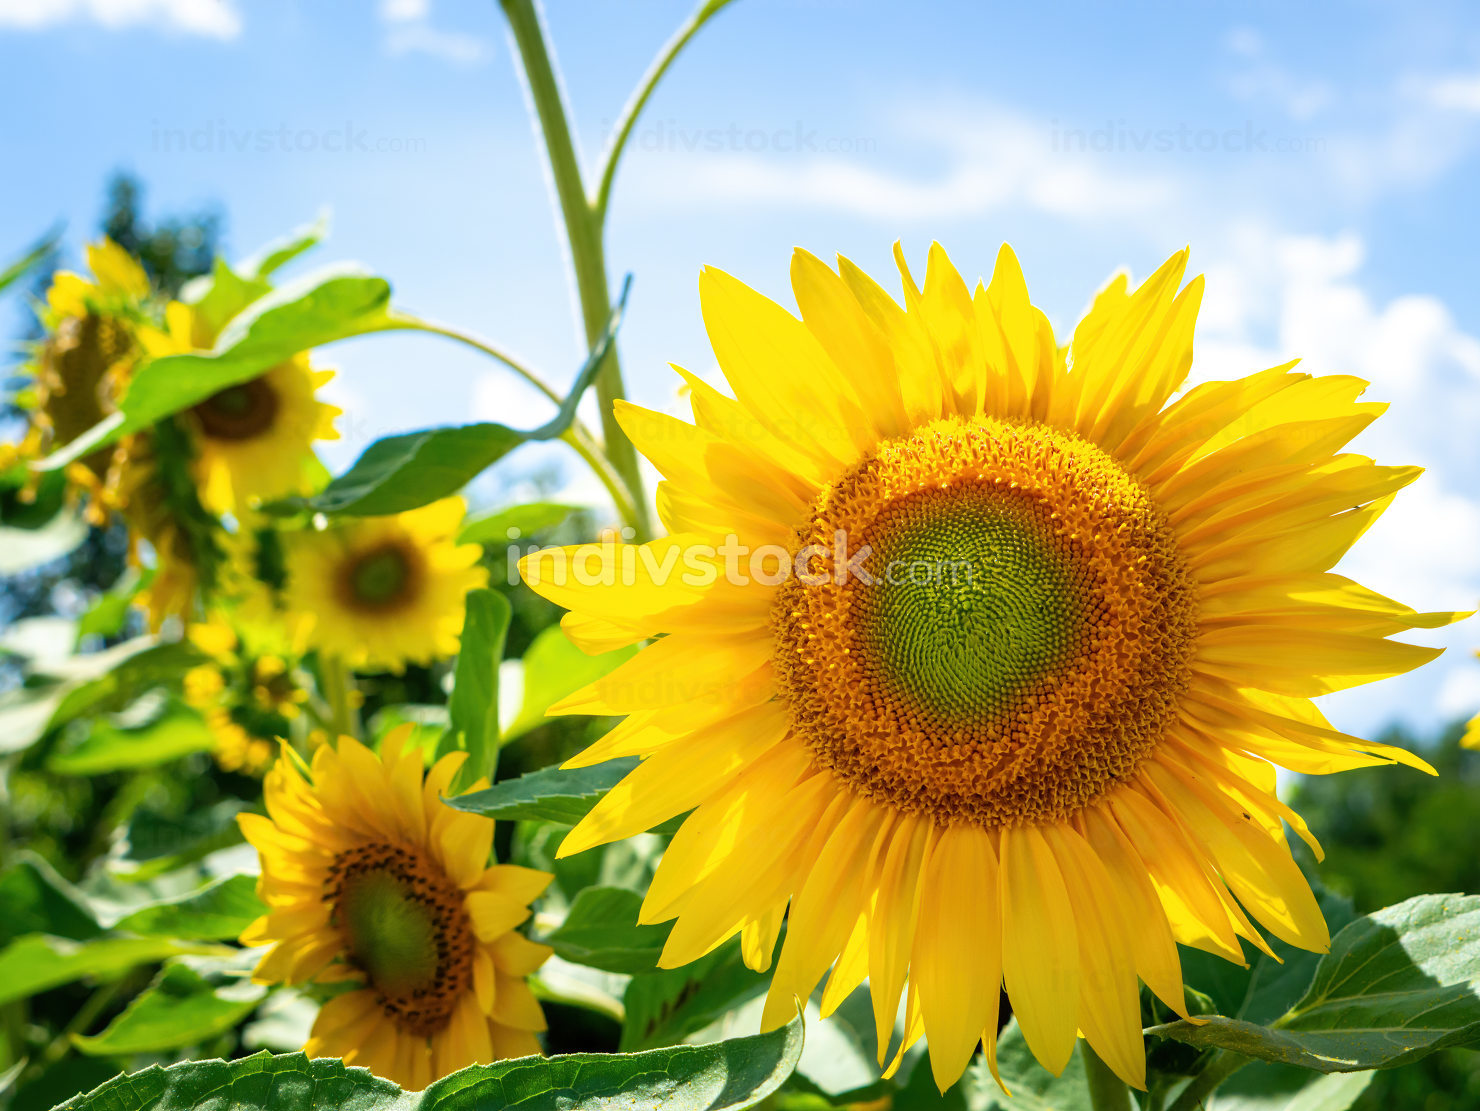 some sunflowers on a sunny day